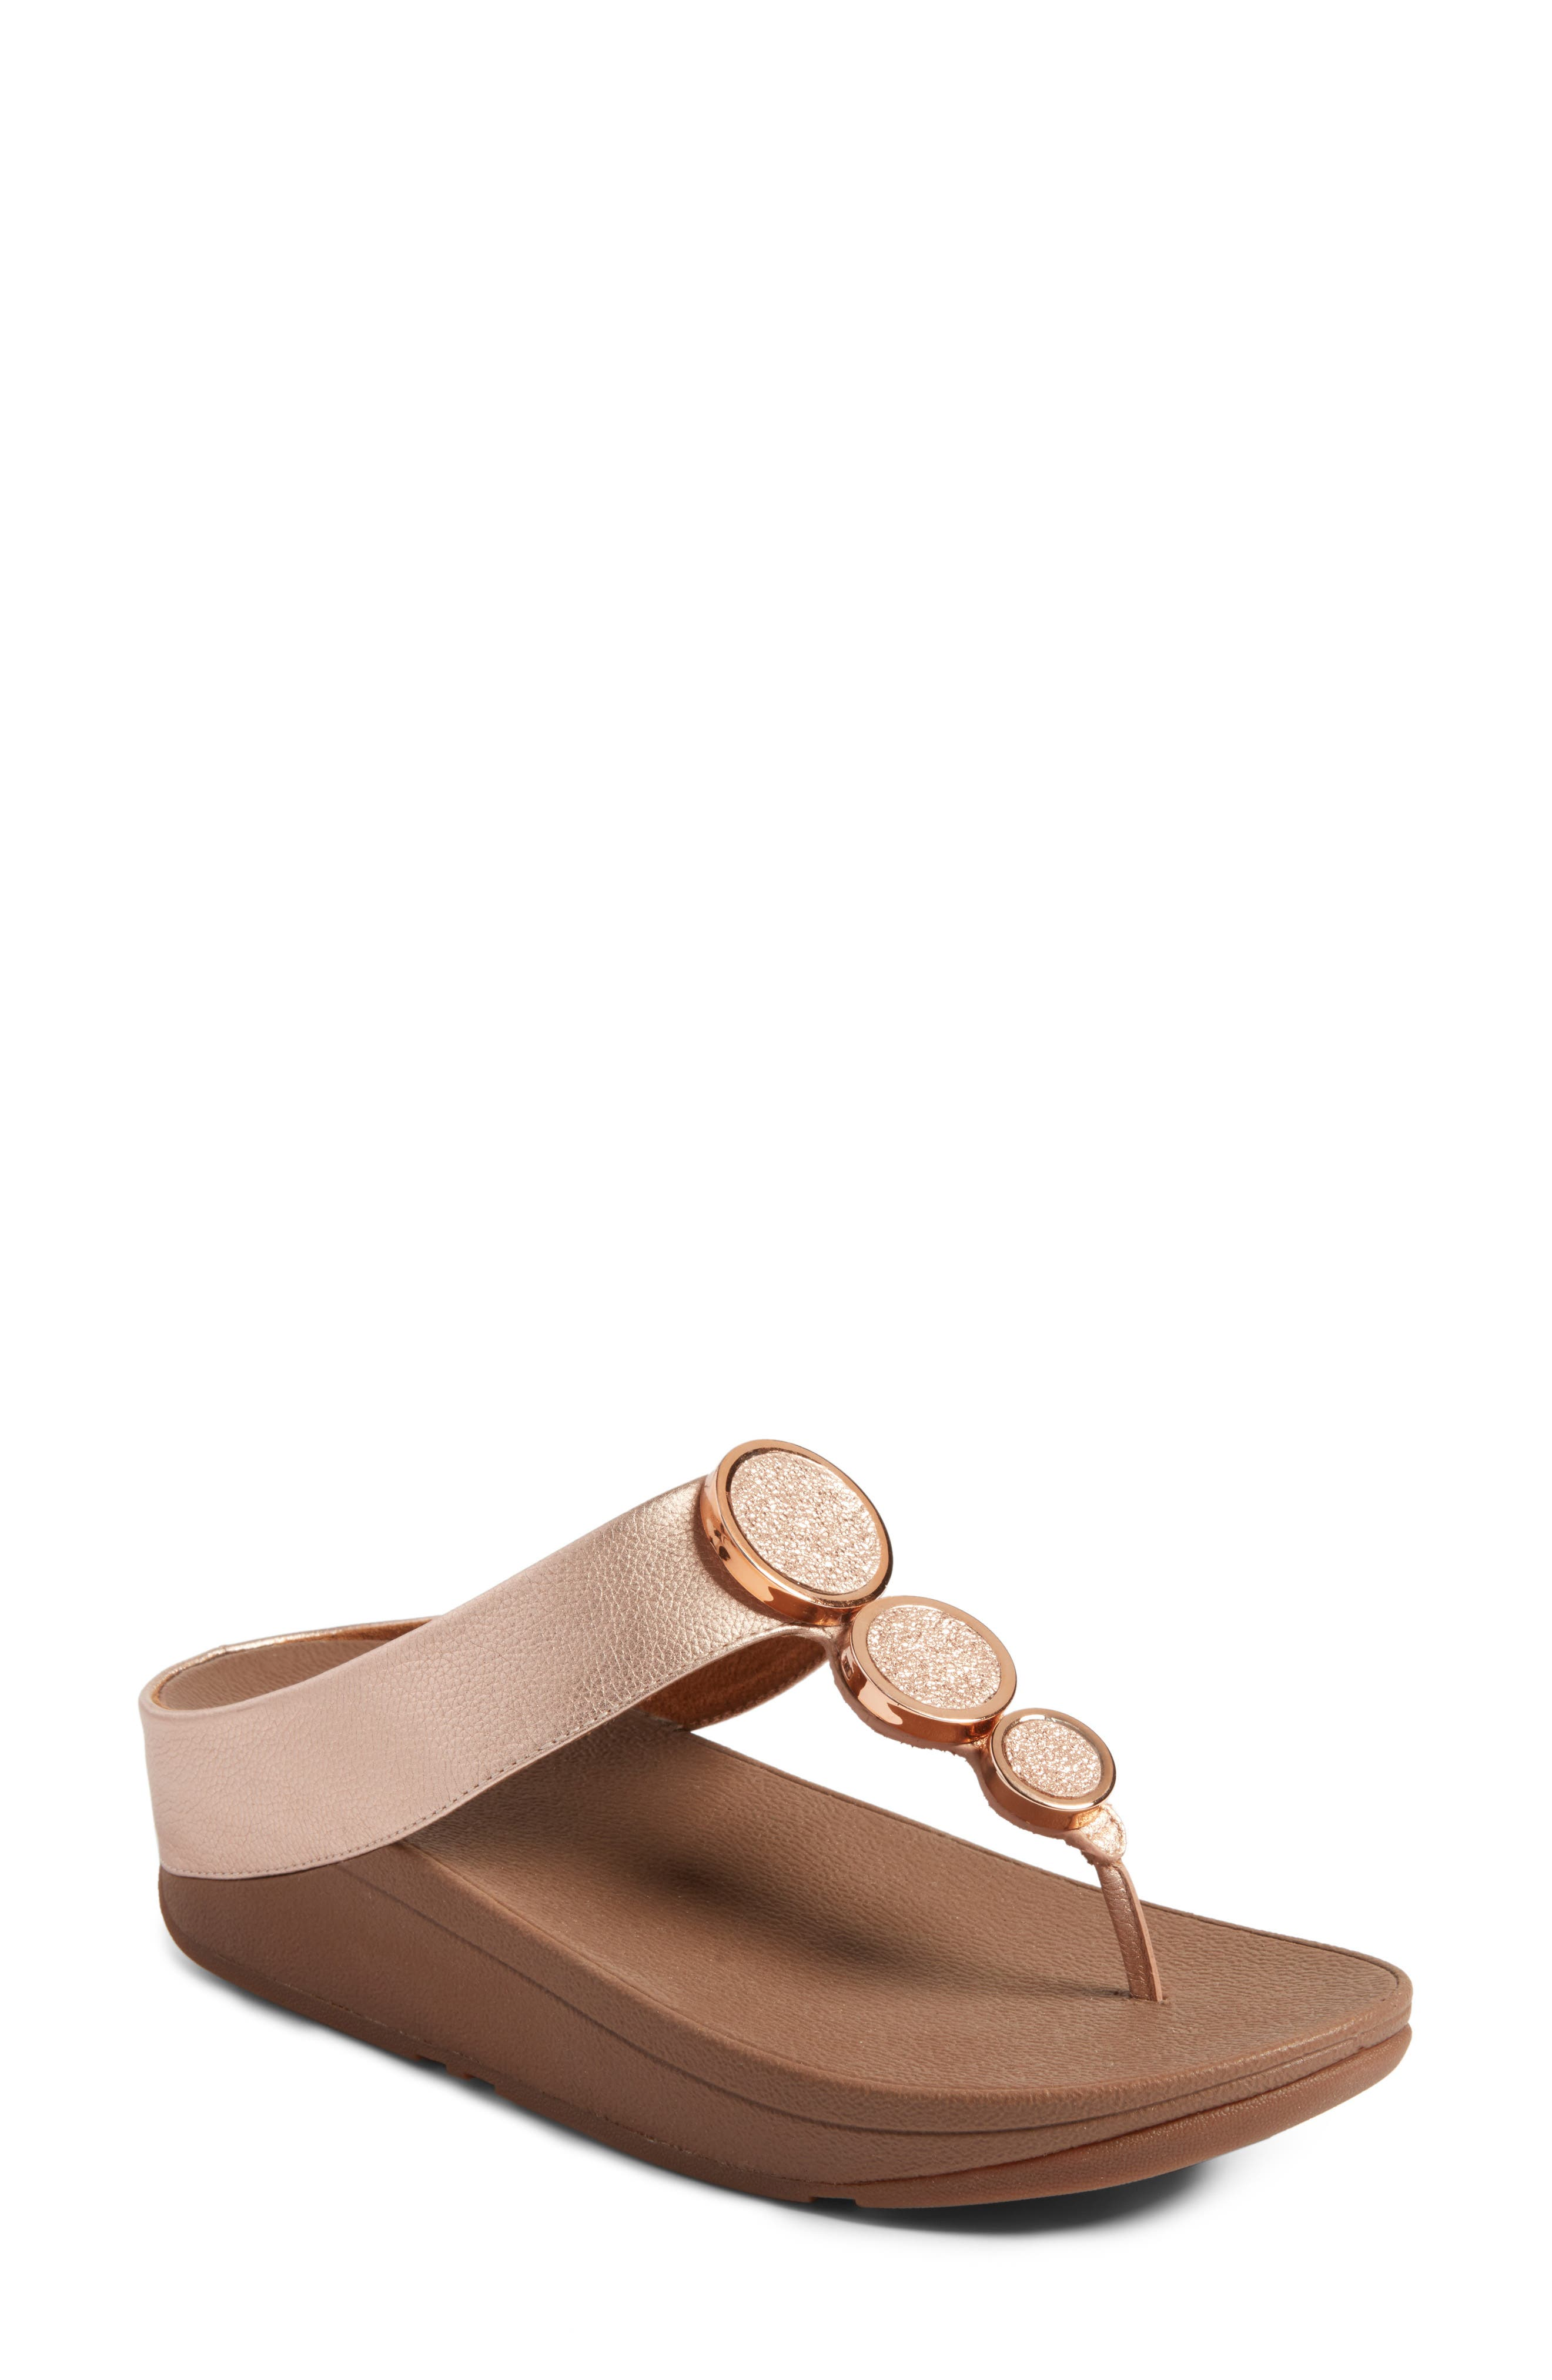 Alternate Image 1 Selected - FitFlop Halo Sandal (Women)